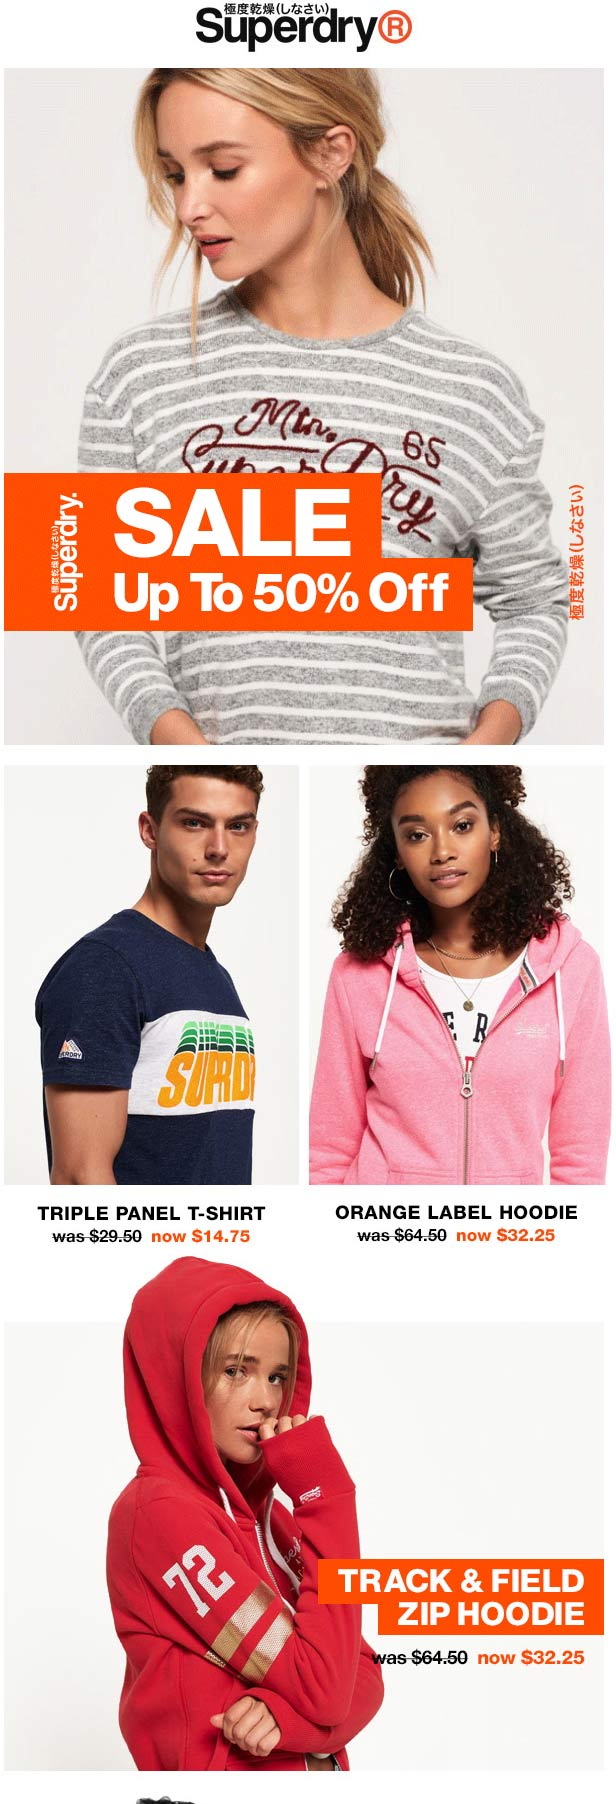 Superdry Coupon July 2019 50% off sale going on at Superdry